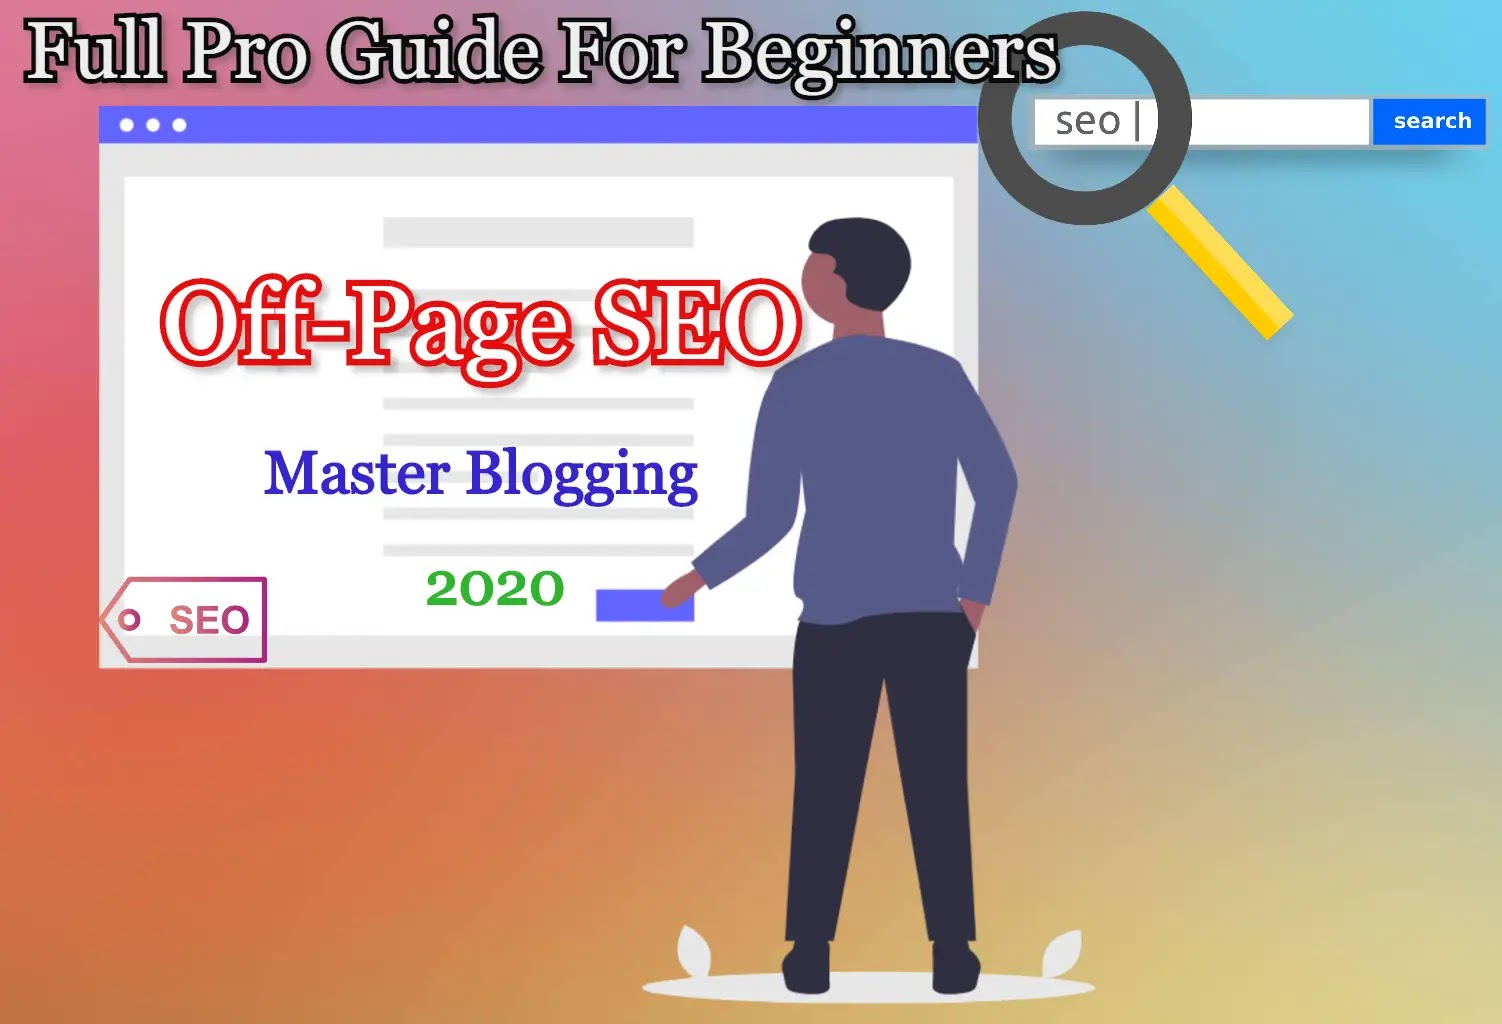 What is Off-Page SEO - Full Pro Guide For Beginners | Master Blogging Tips [2020]